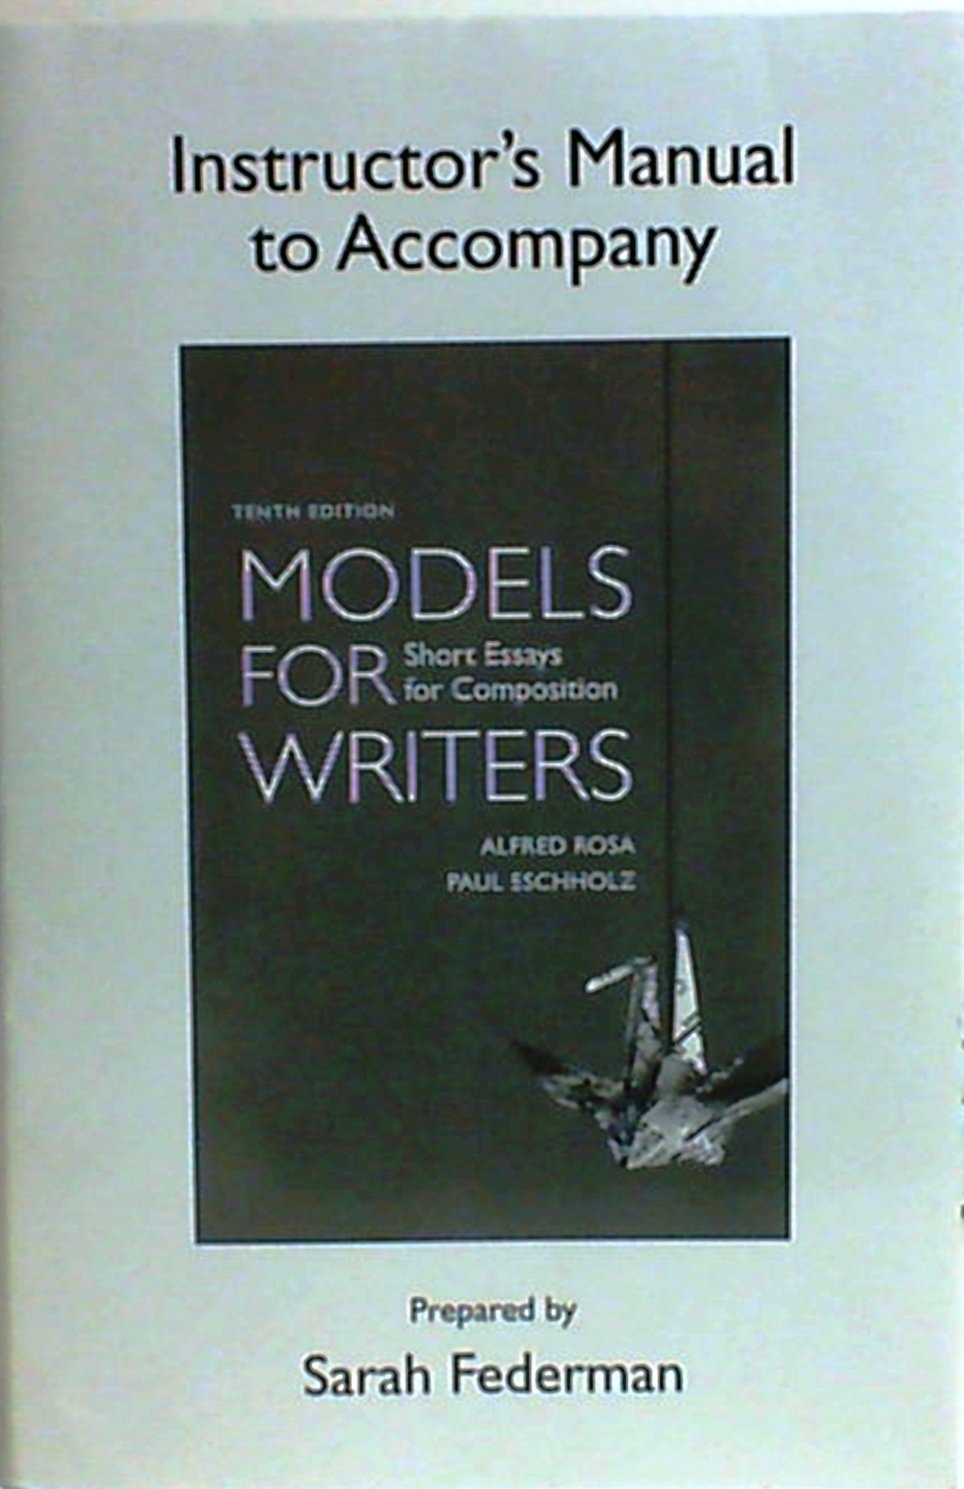 007 Models For Writers Short Essays Composition Essay Example Singular 12th Edition 13th Pdf Full